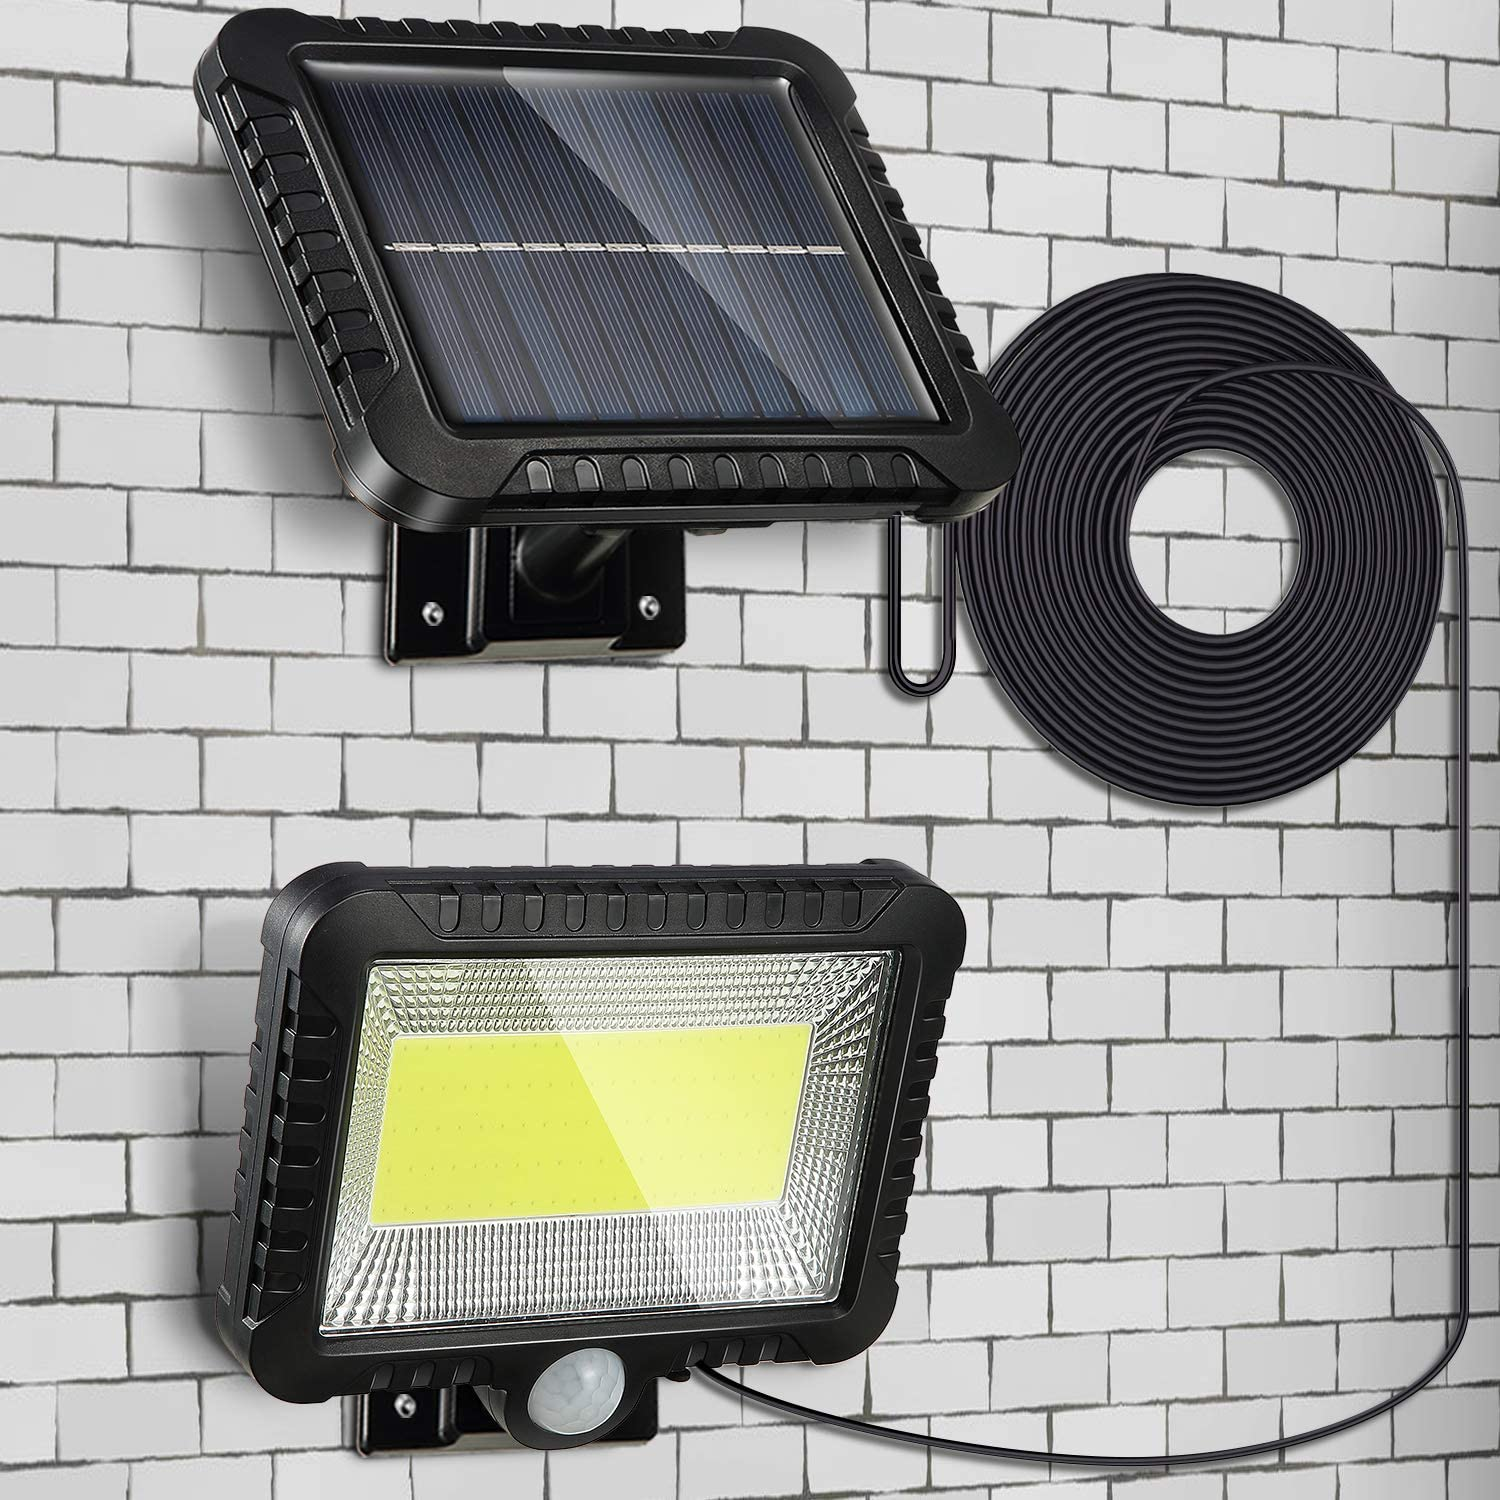 Solar Lights Outdoor, Waterproof Human Body Induction Solar Powered Wall Lamp 100 LED Spotlight, 5 m/ 16.4 ft Cord Easy-to-Install Security Lights with Adjustable Solar Panel for Garden Garage